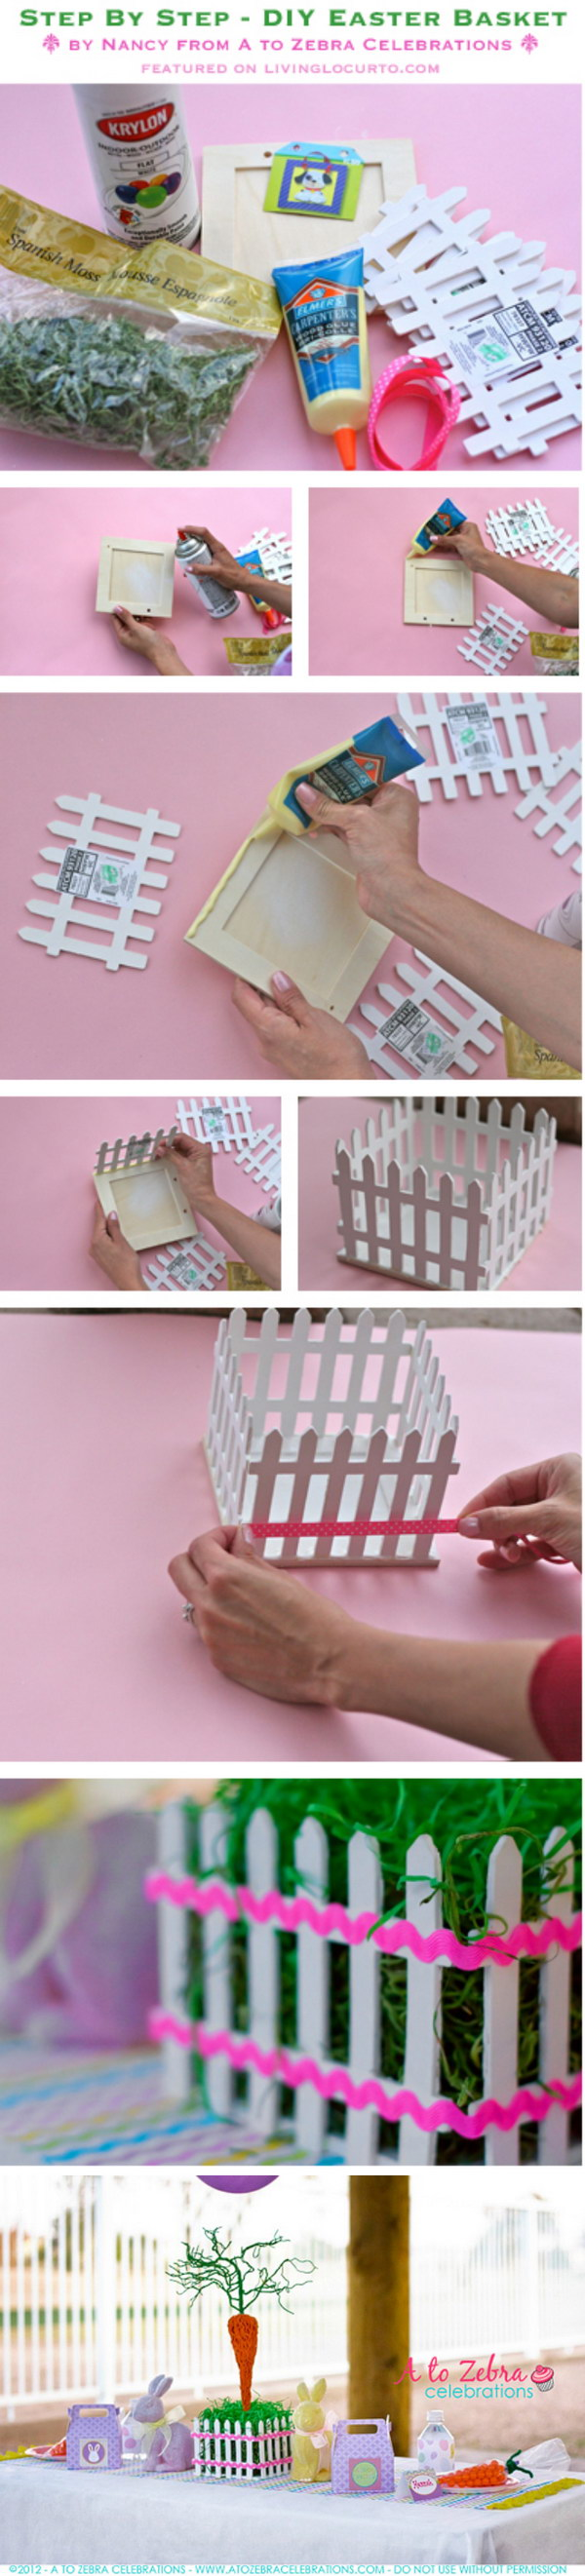 DIY Easter Picket Fence Basket Centerpiece.